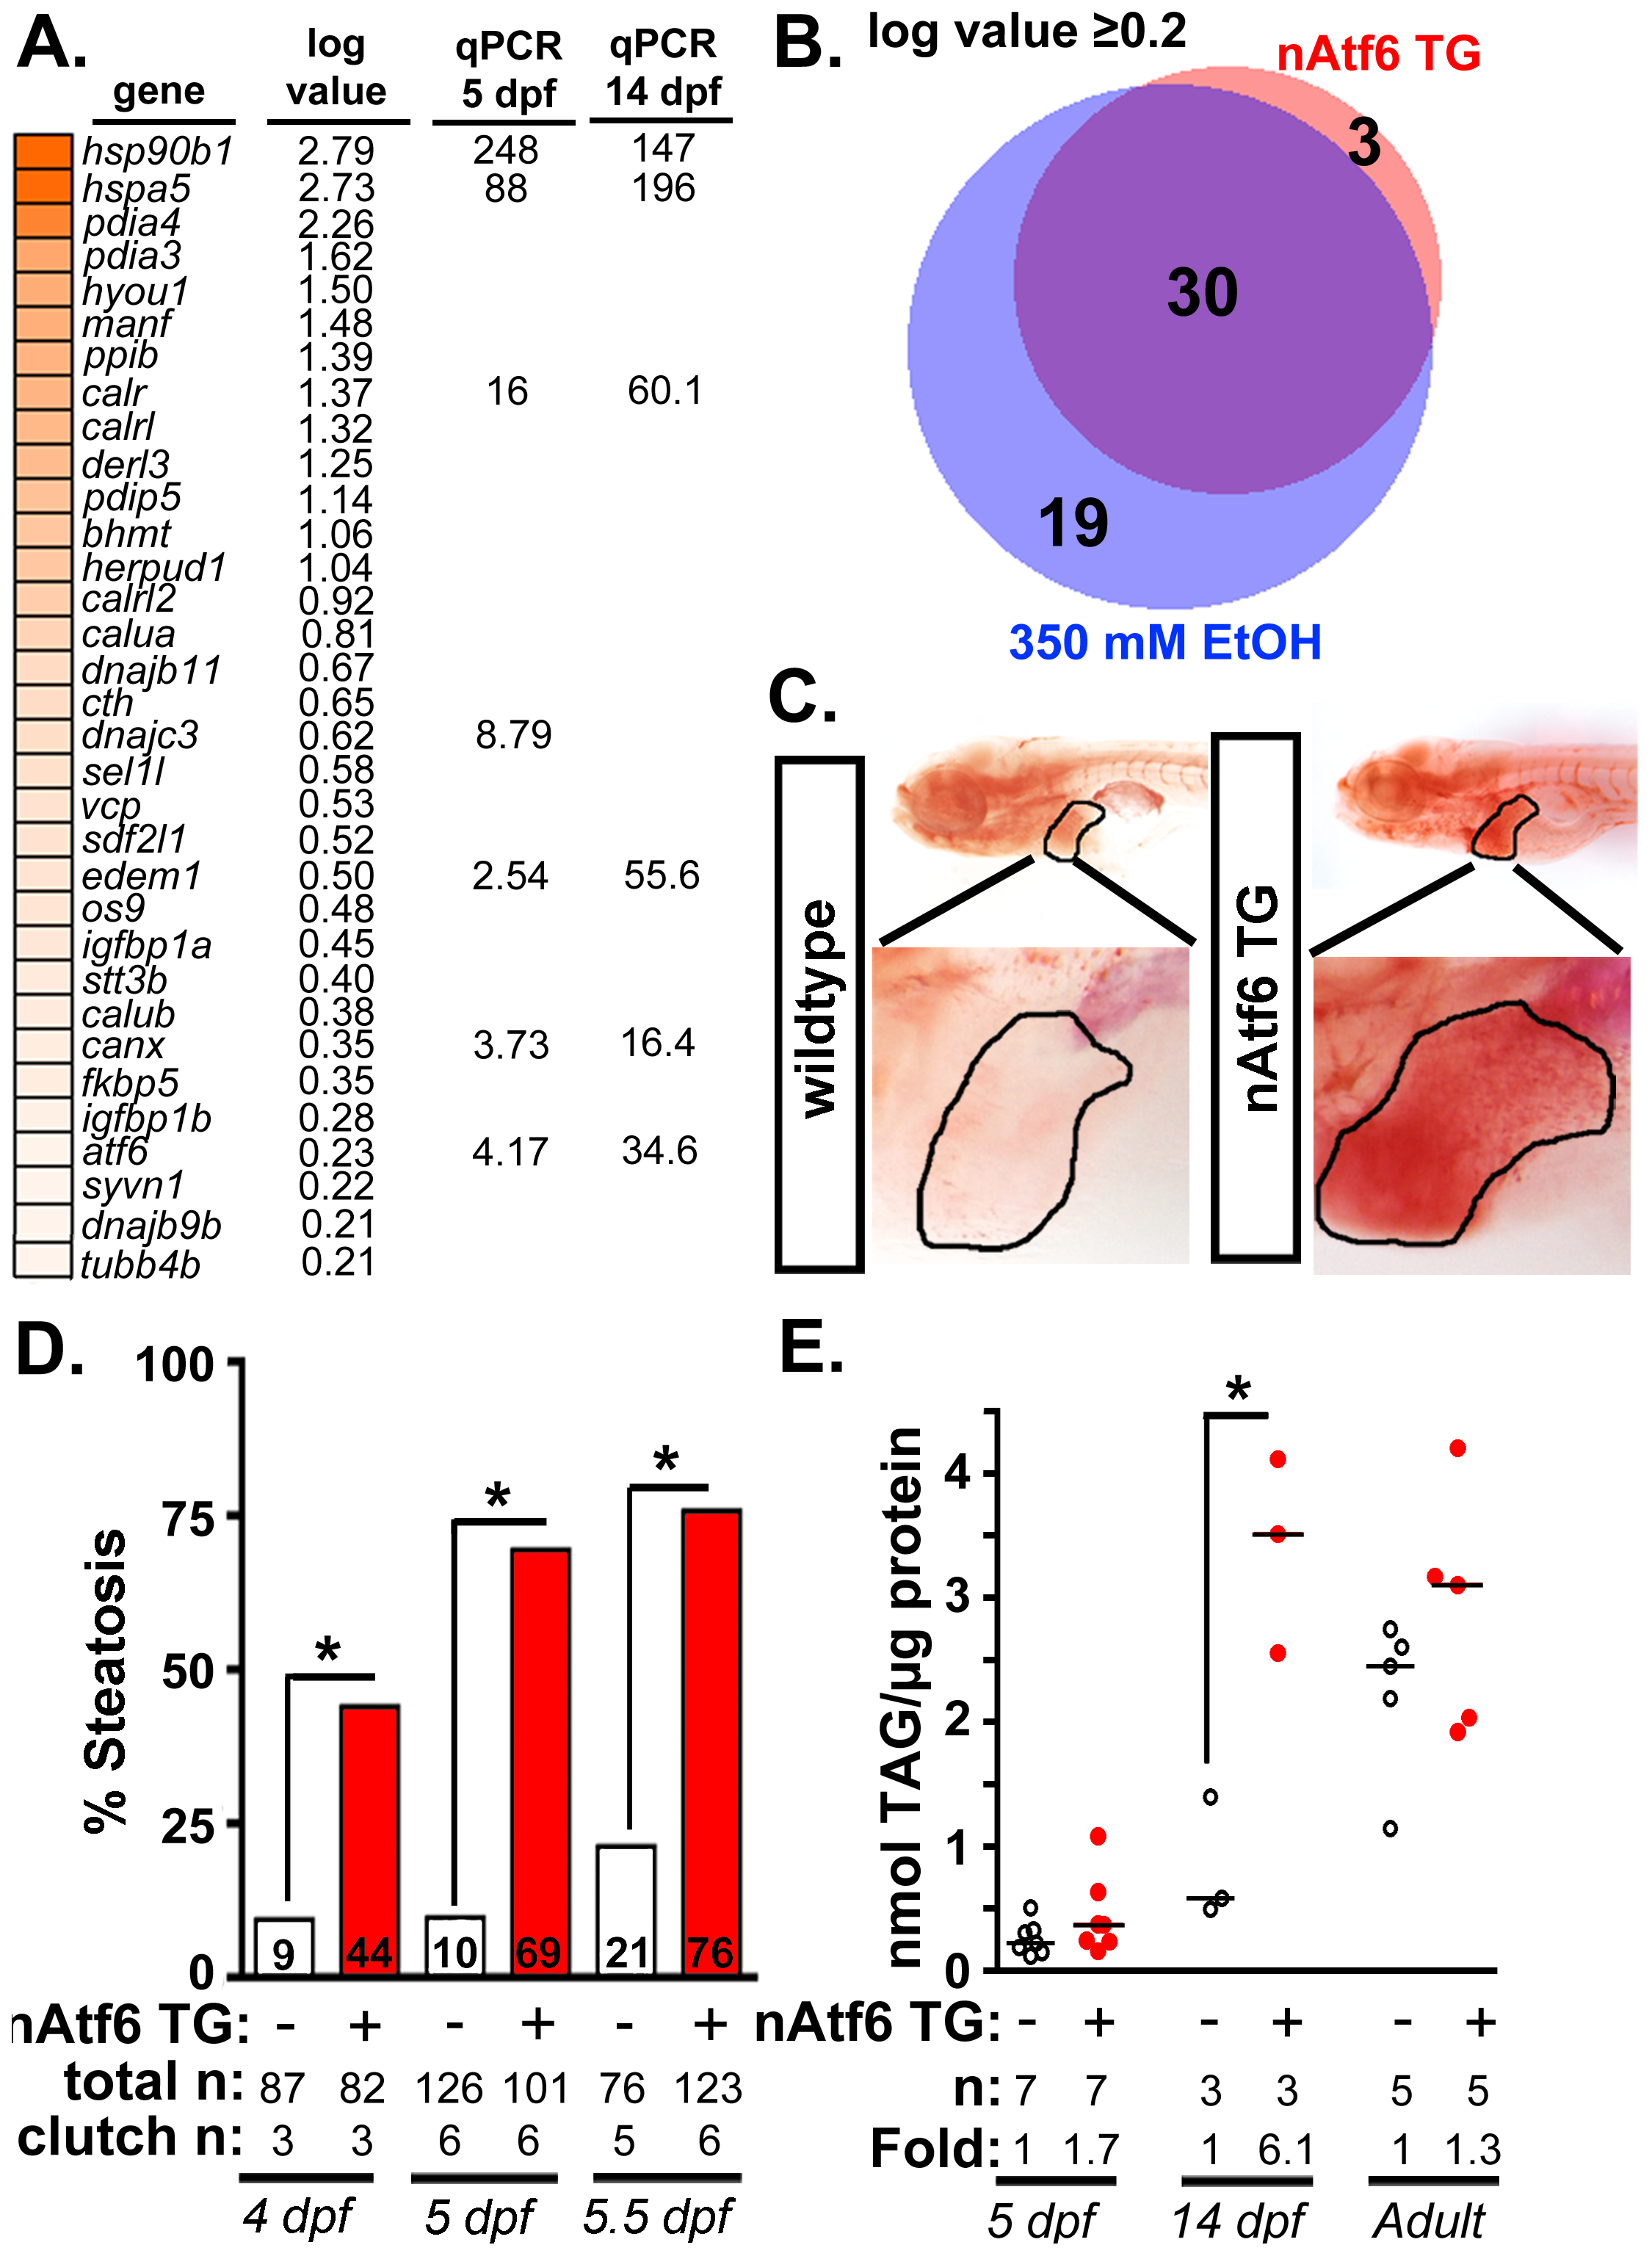 nAtf6 overexpression is sufficient to drive steatosis.